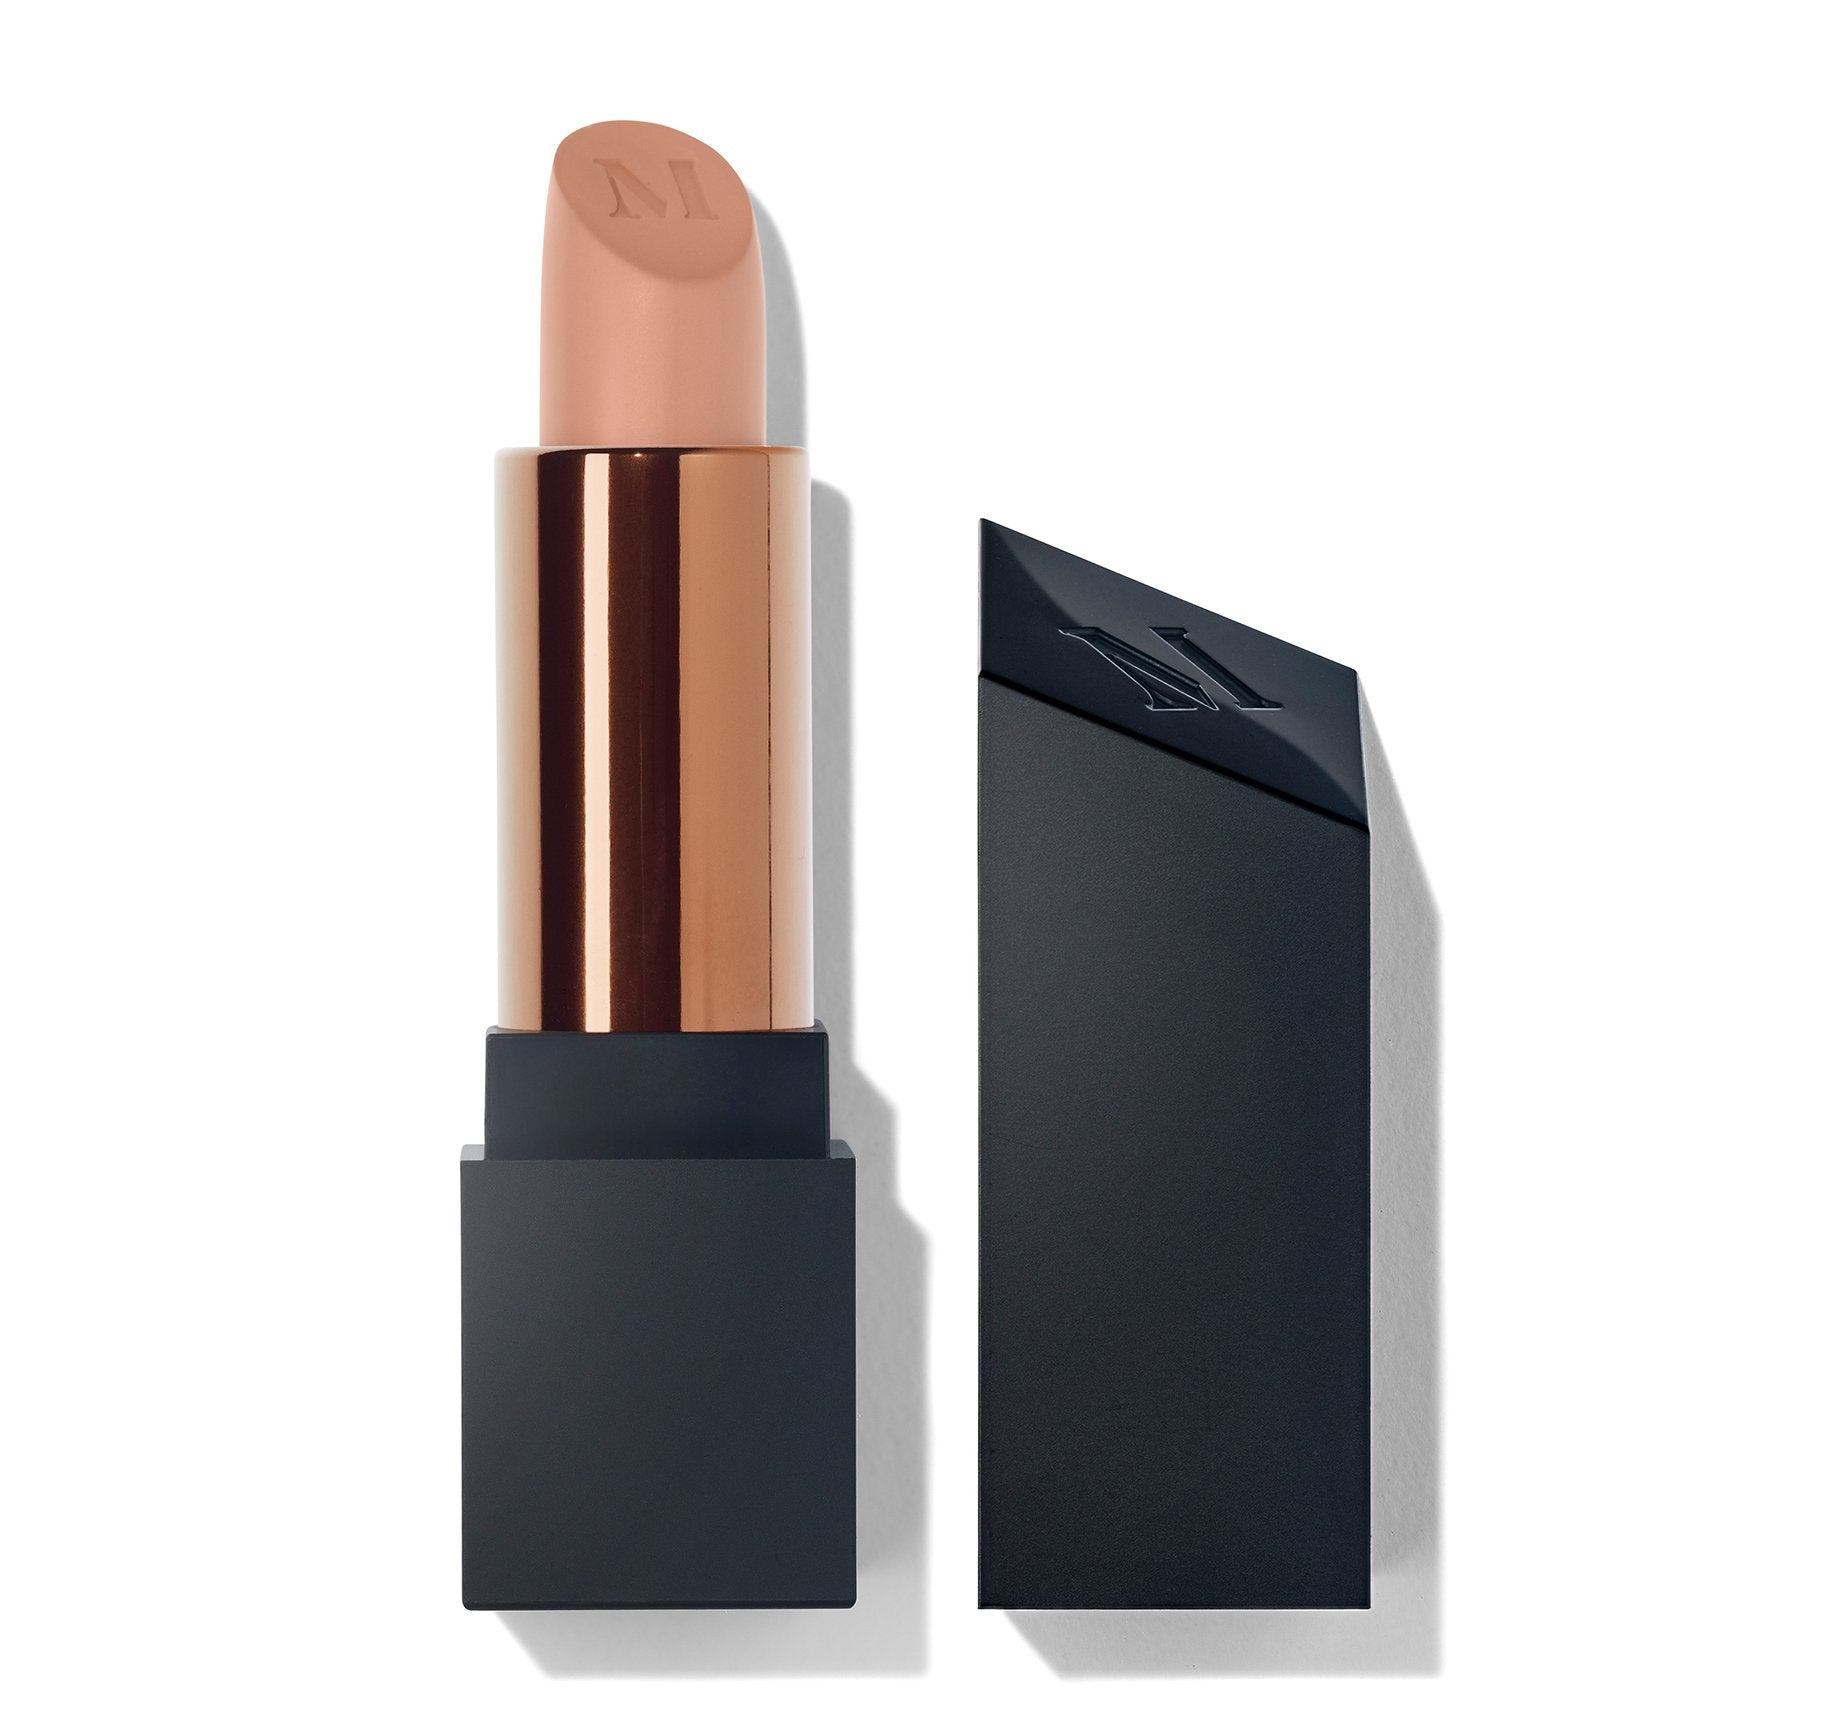 MEGA MATTE LIPSTICK - BOY TOY, view larger image